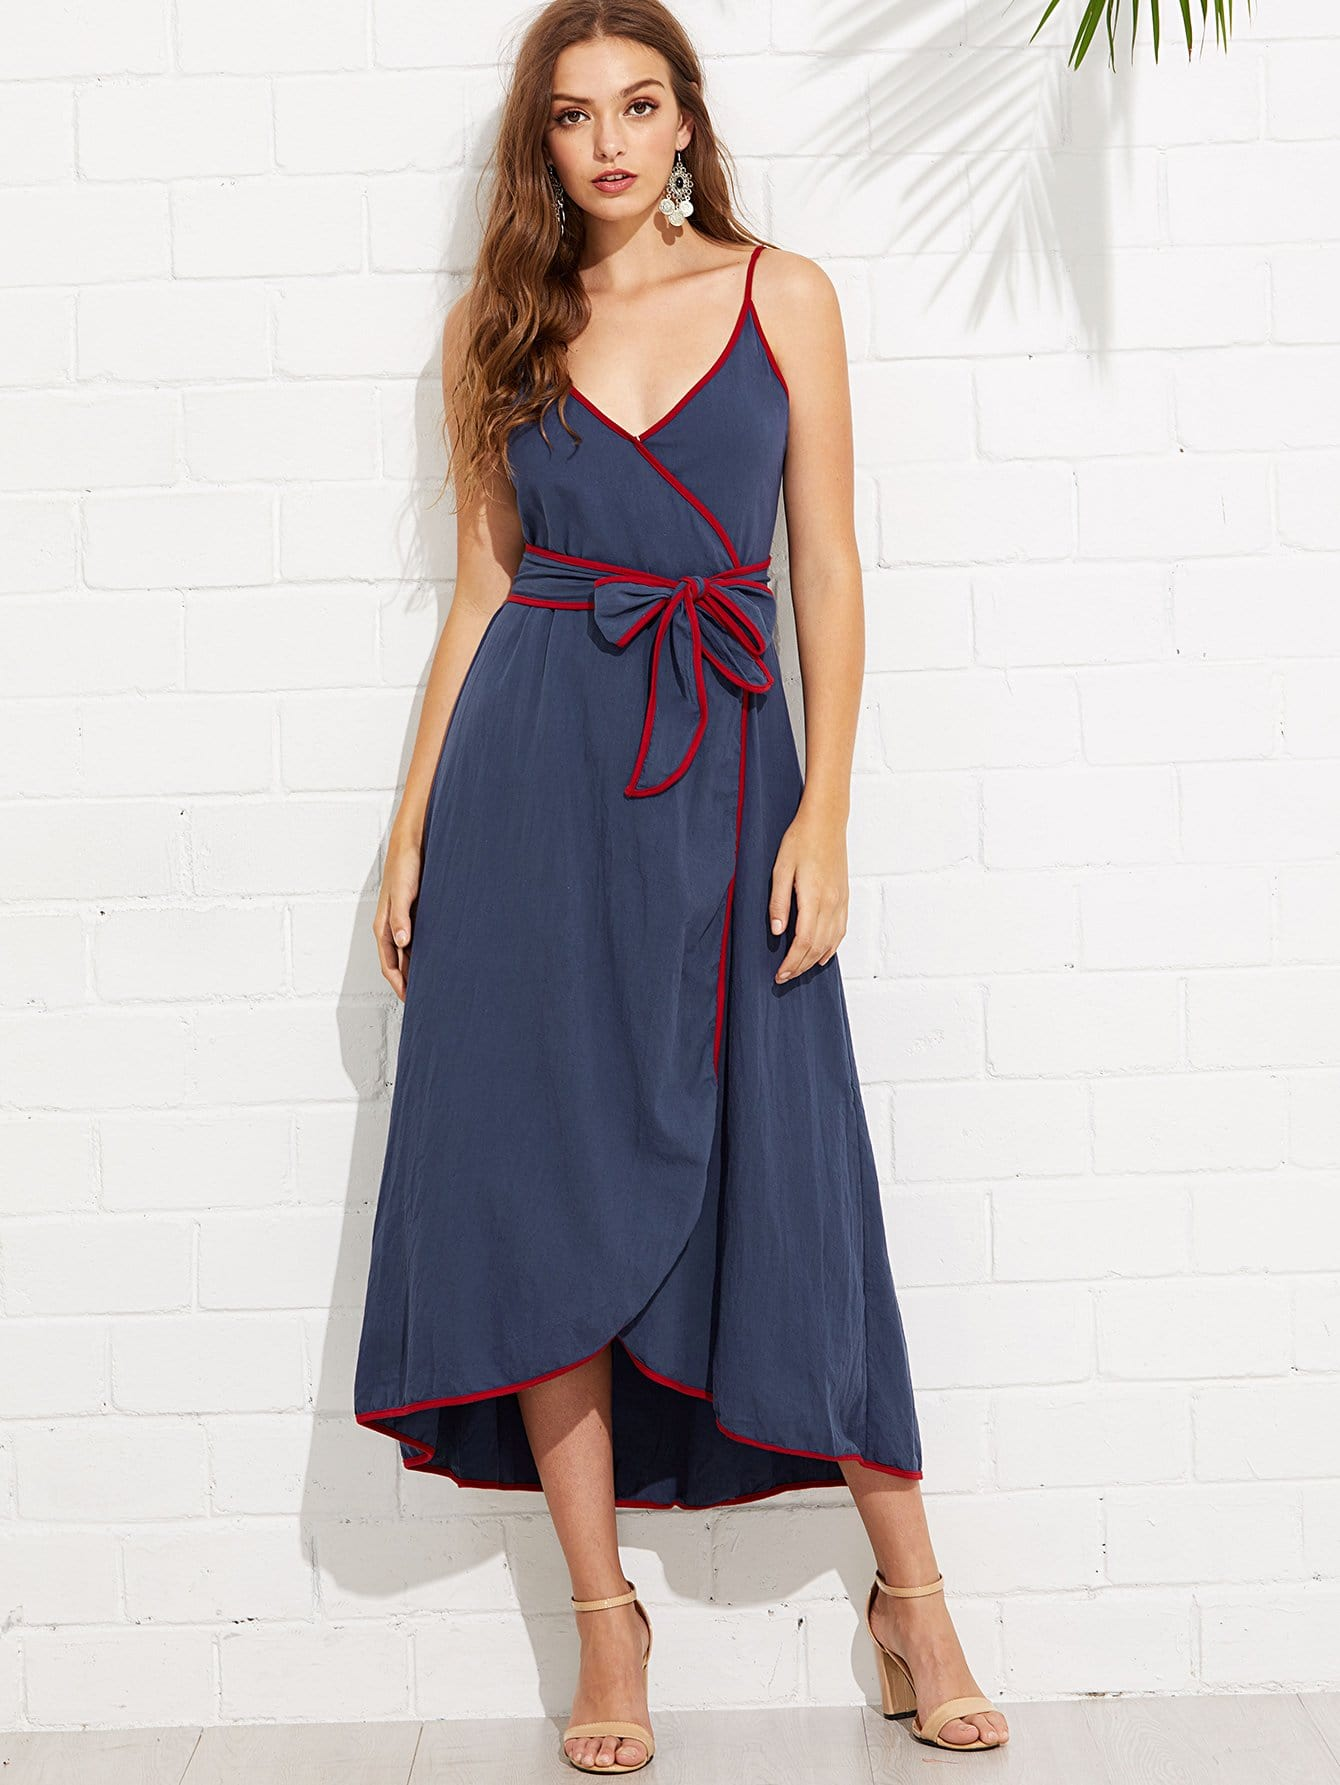 Contrast Binding Wrap Cami Dress with Belt contrast binding wrap dress